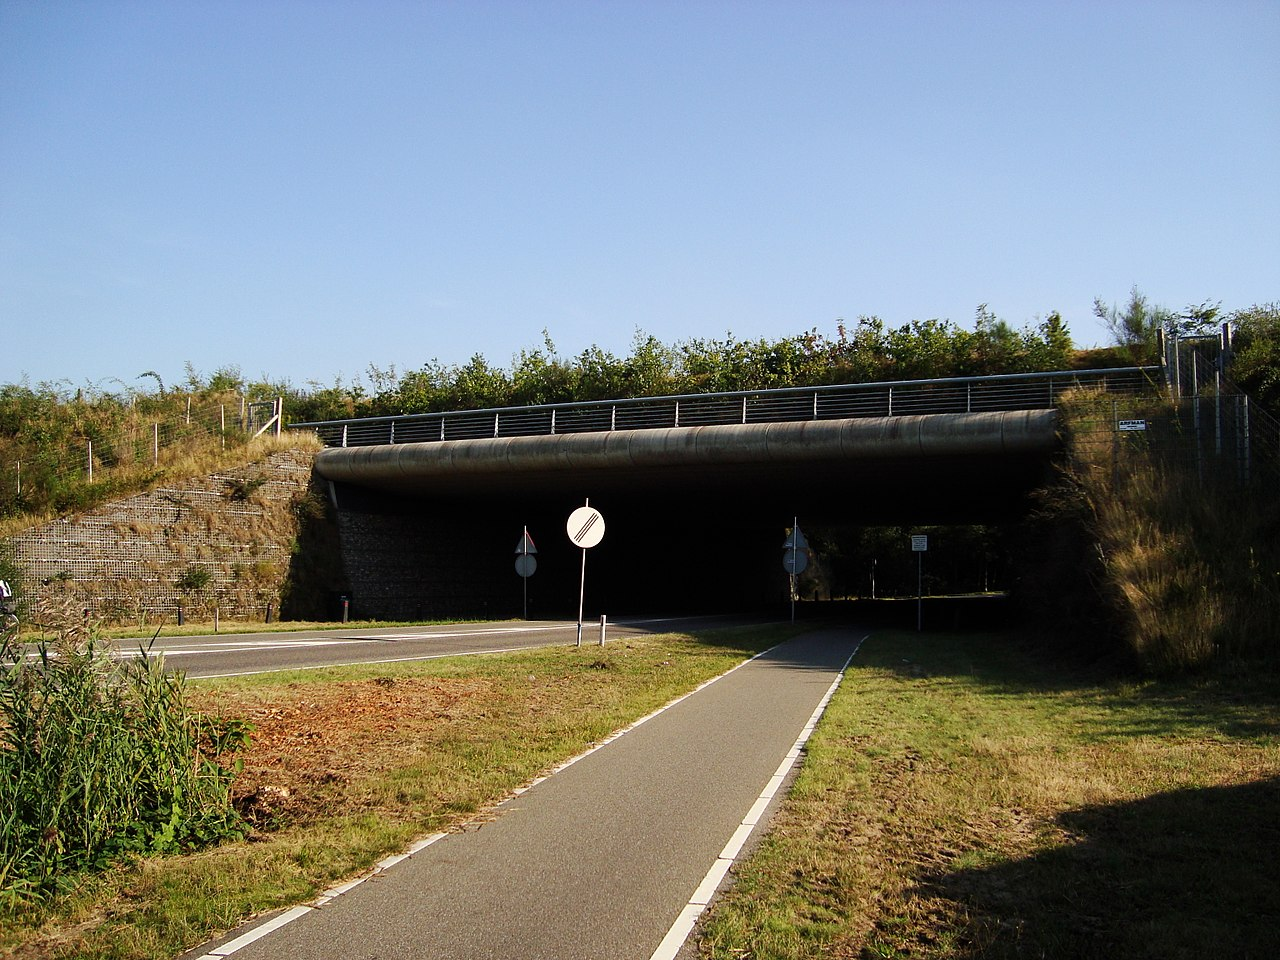 Wildlife crossing in Hilversum, the Netherlands. photo by Globe-trotter Wikimedia Commons